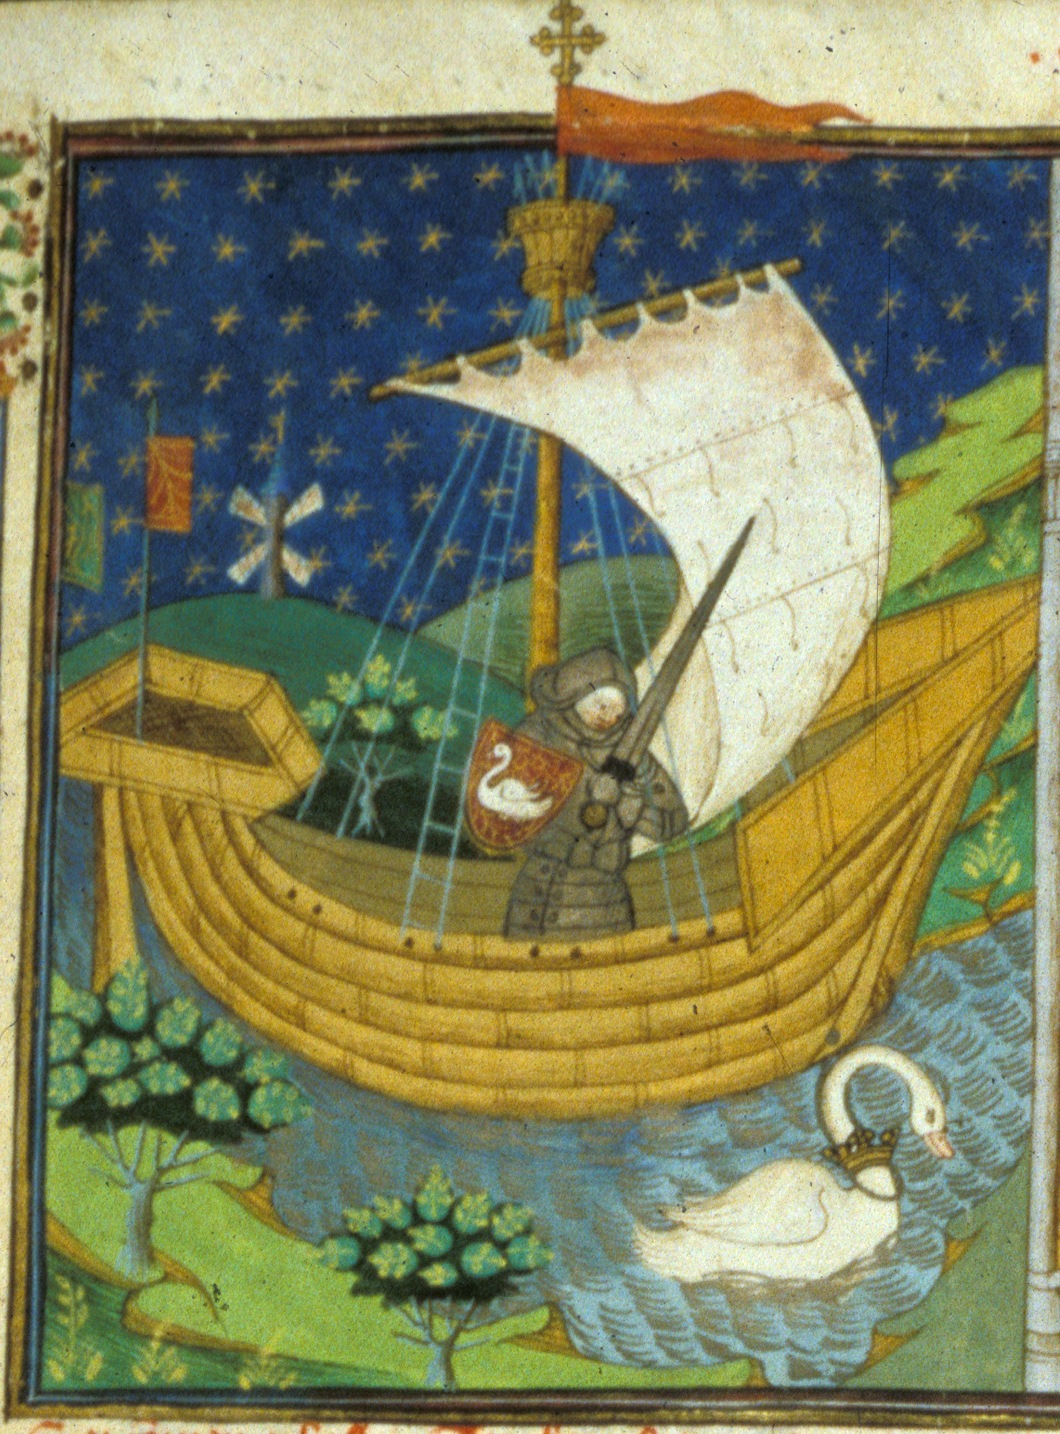 A_knight_in_a_boat_drawn_by_a_swan_(British_Library_Royal_15_E_VI,_f_273).jpg